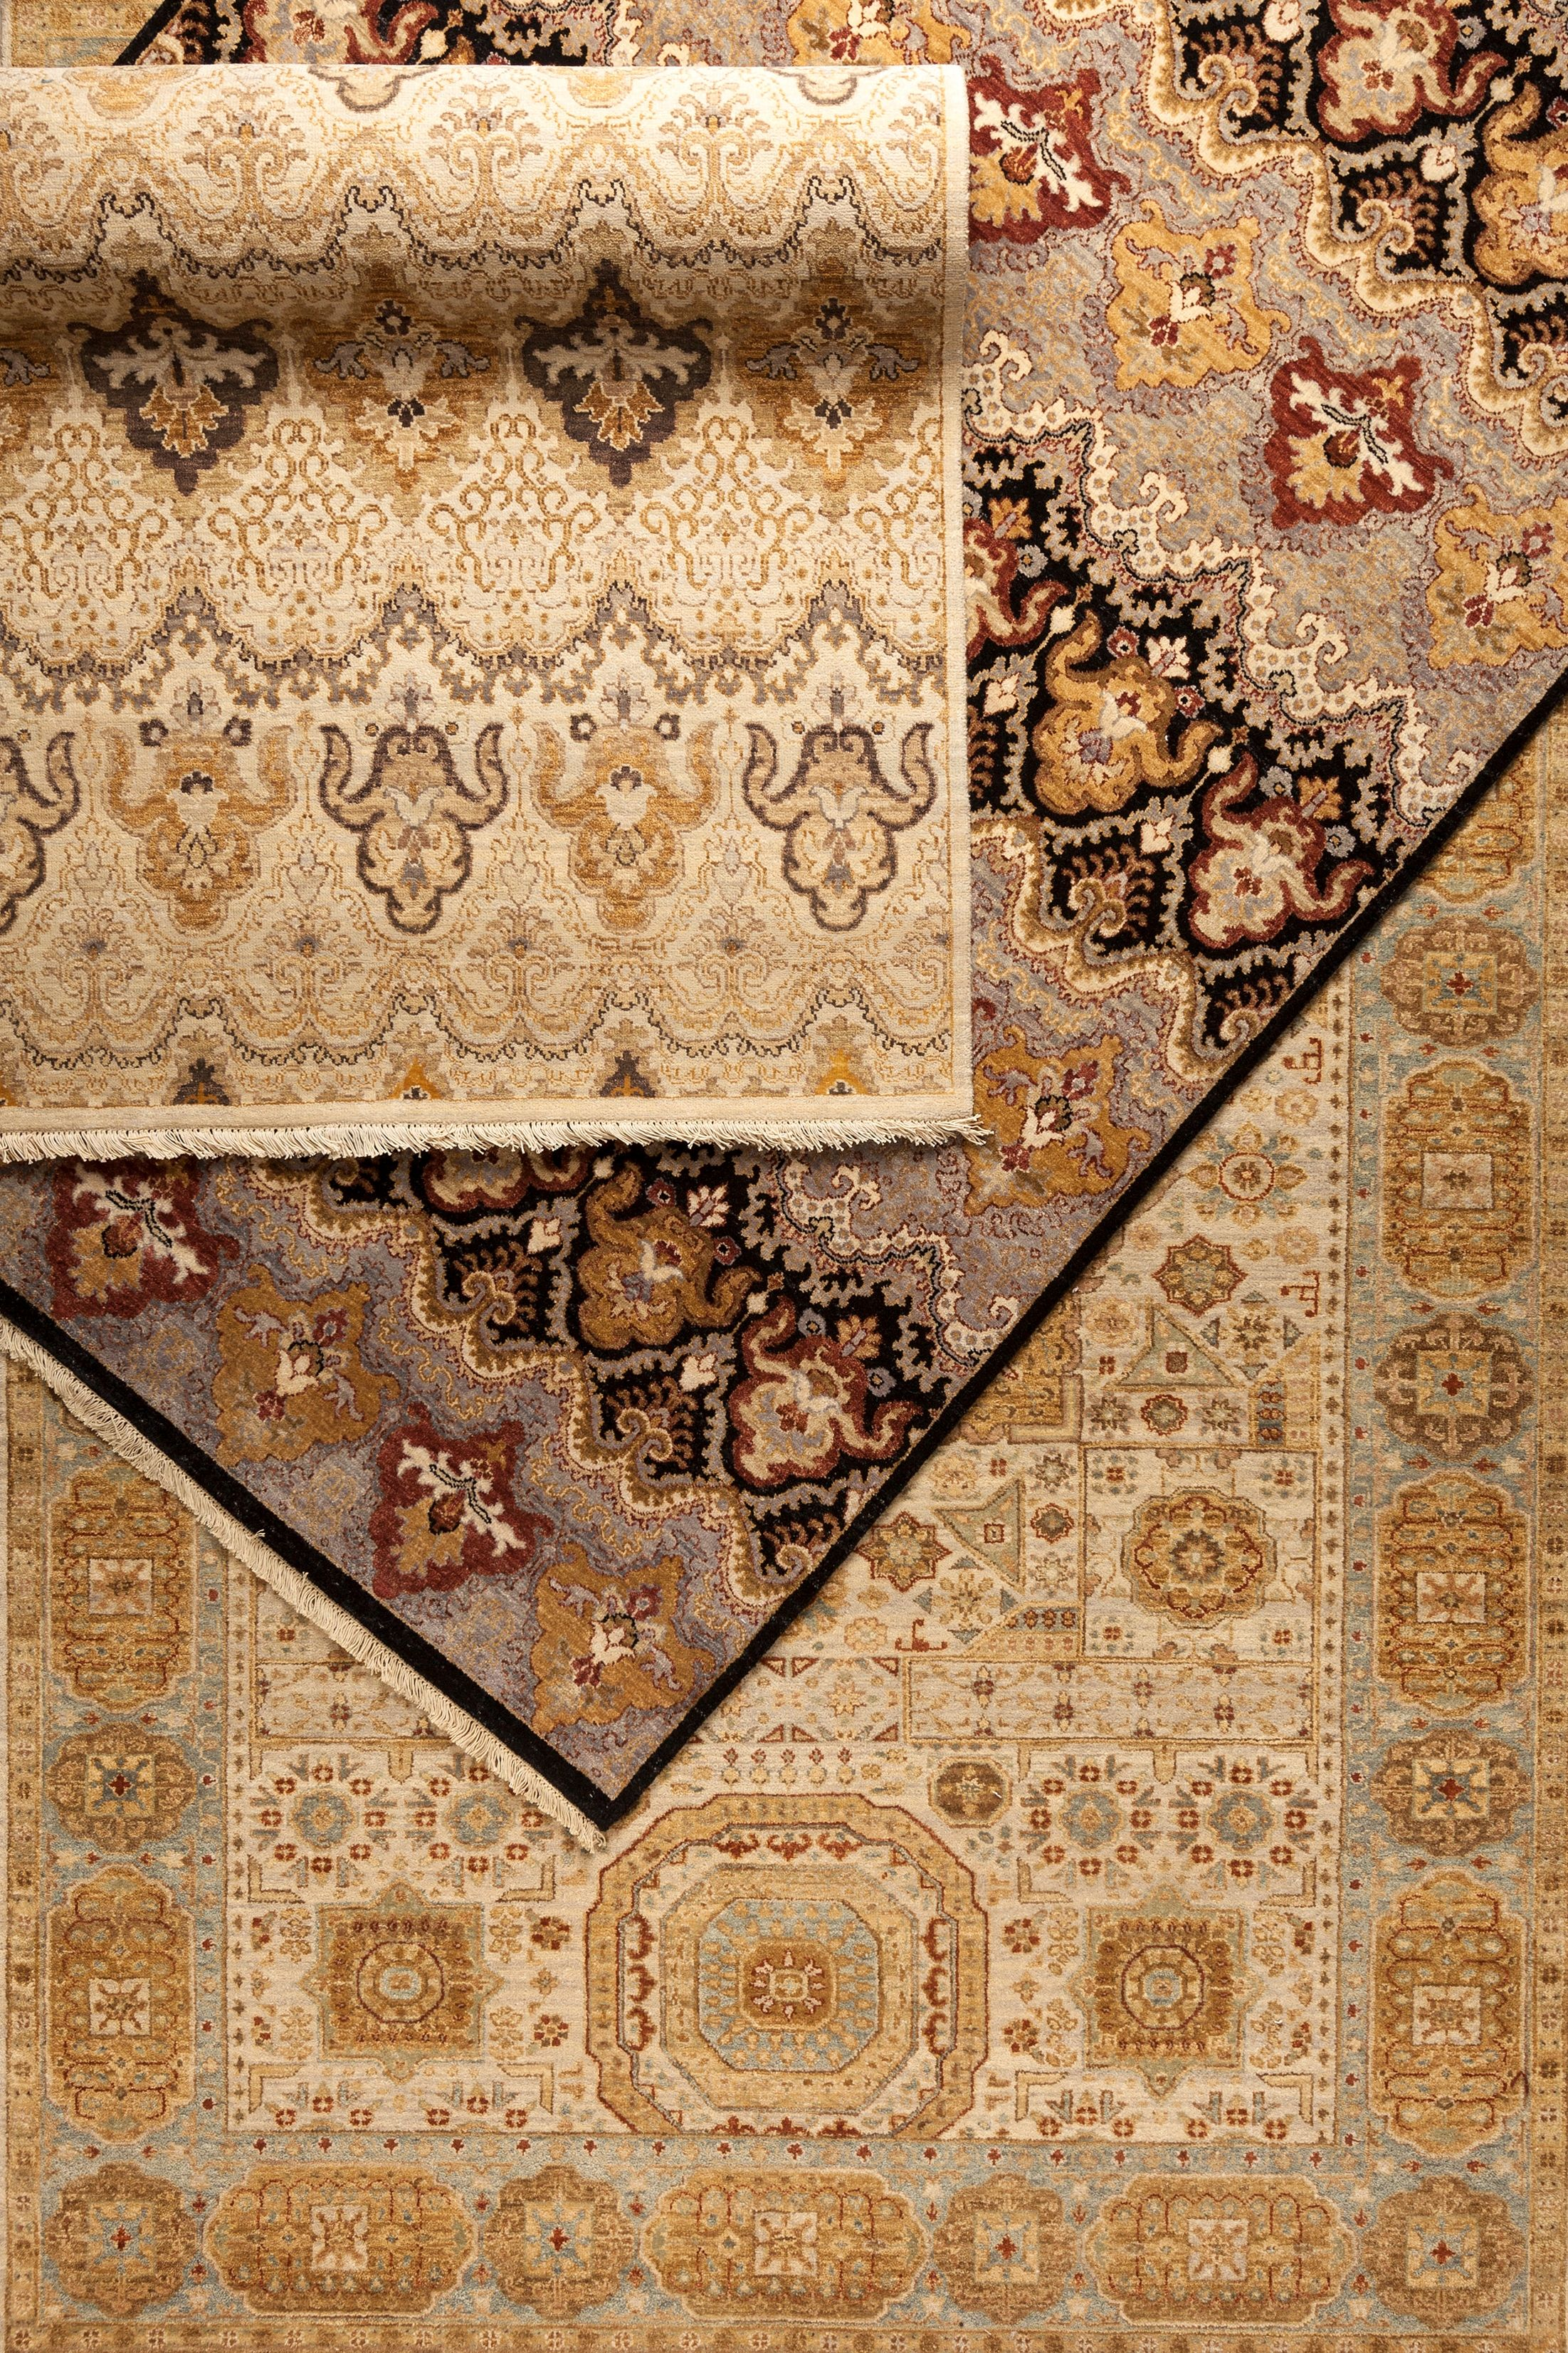 100% New Zealand wool Cambridge collection rugs from Surya.